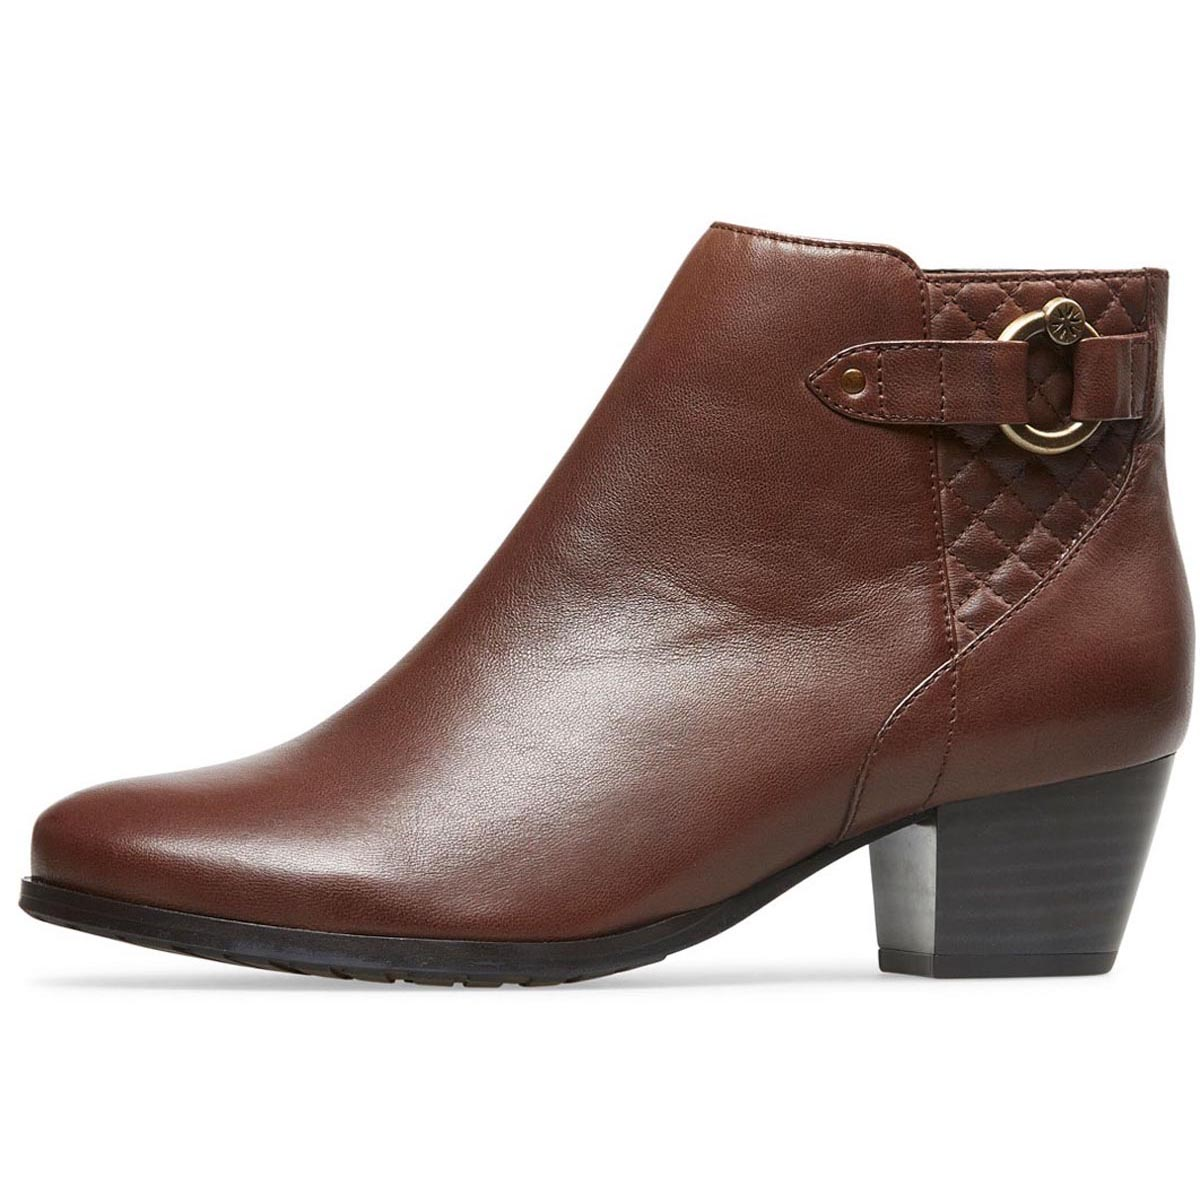 Van Dal - Tawny Chestnut Leather Ankle Boot